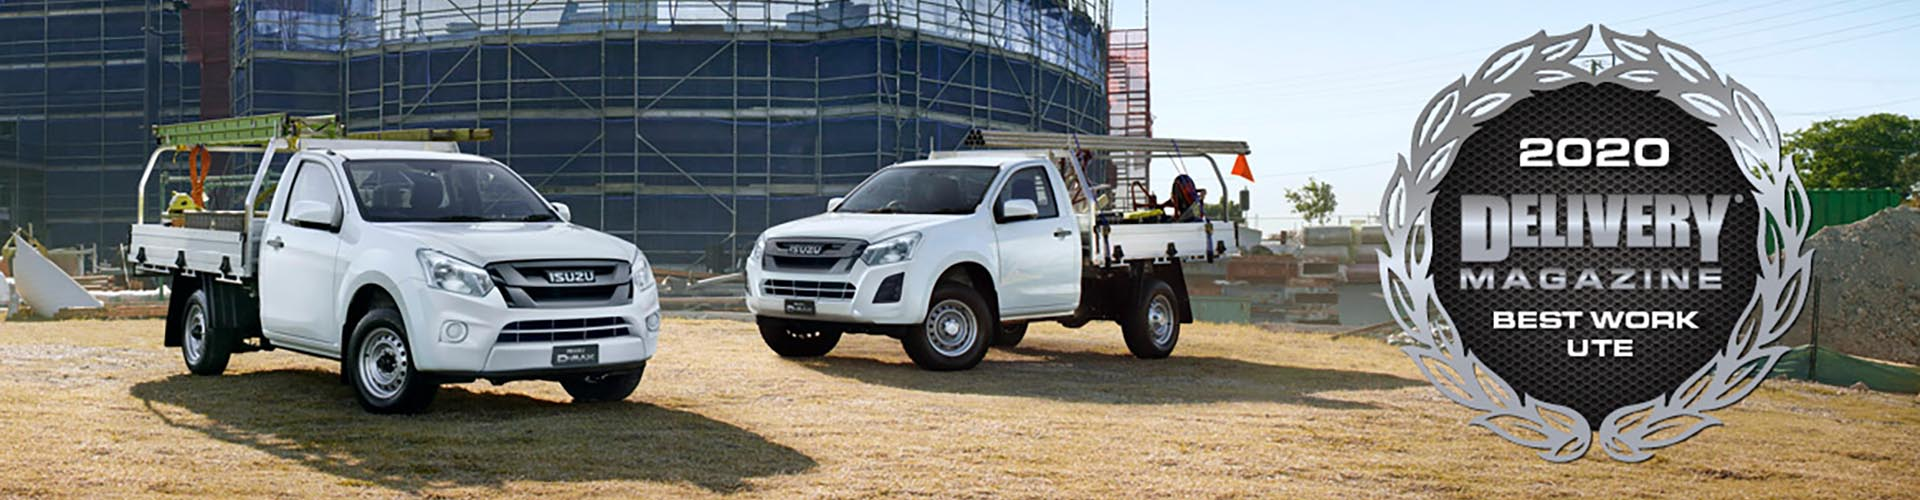 Isuzu UTE Awards